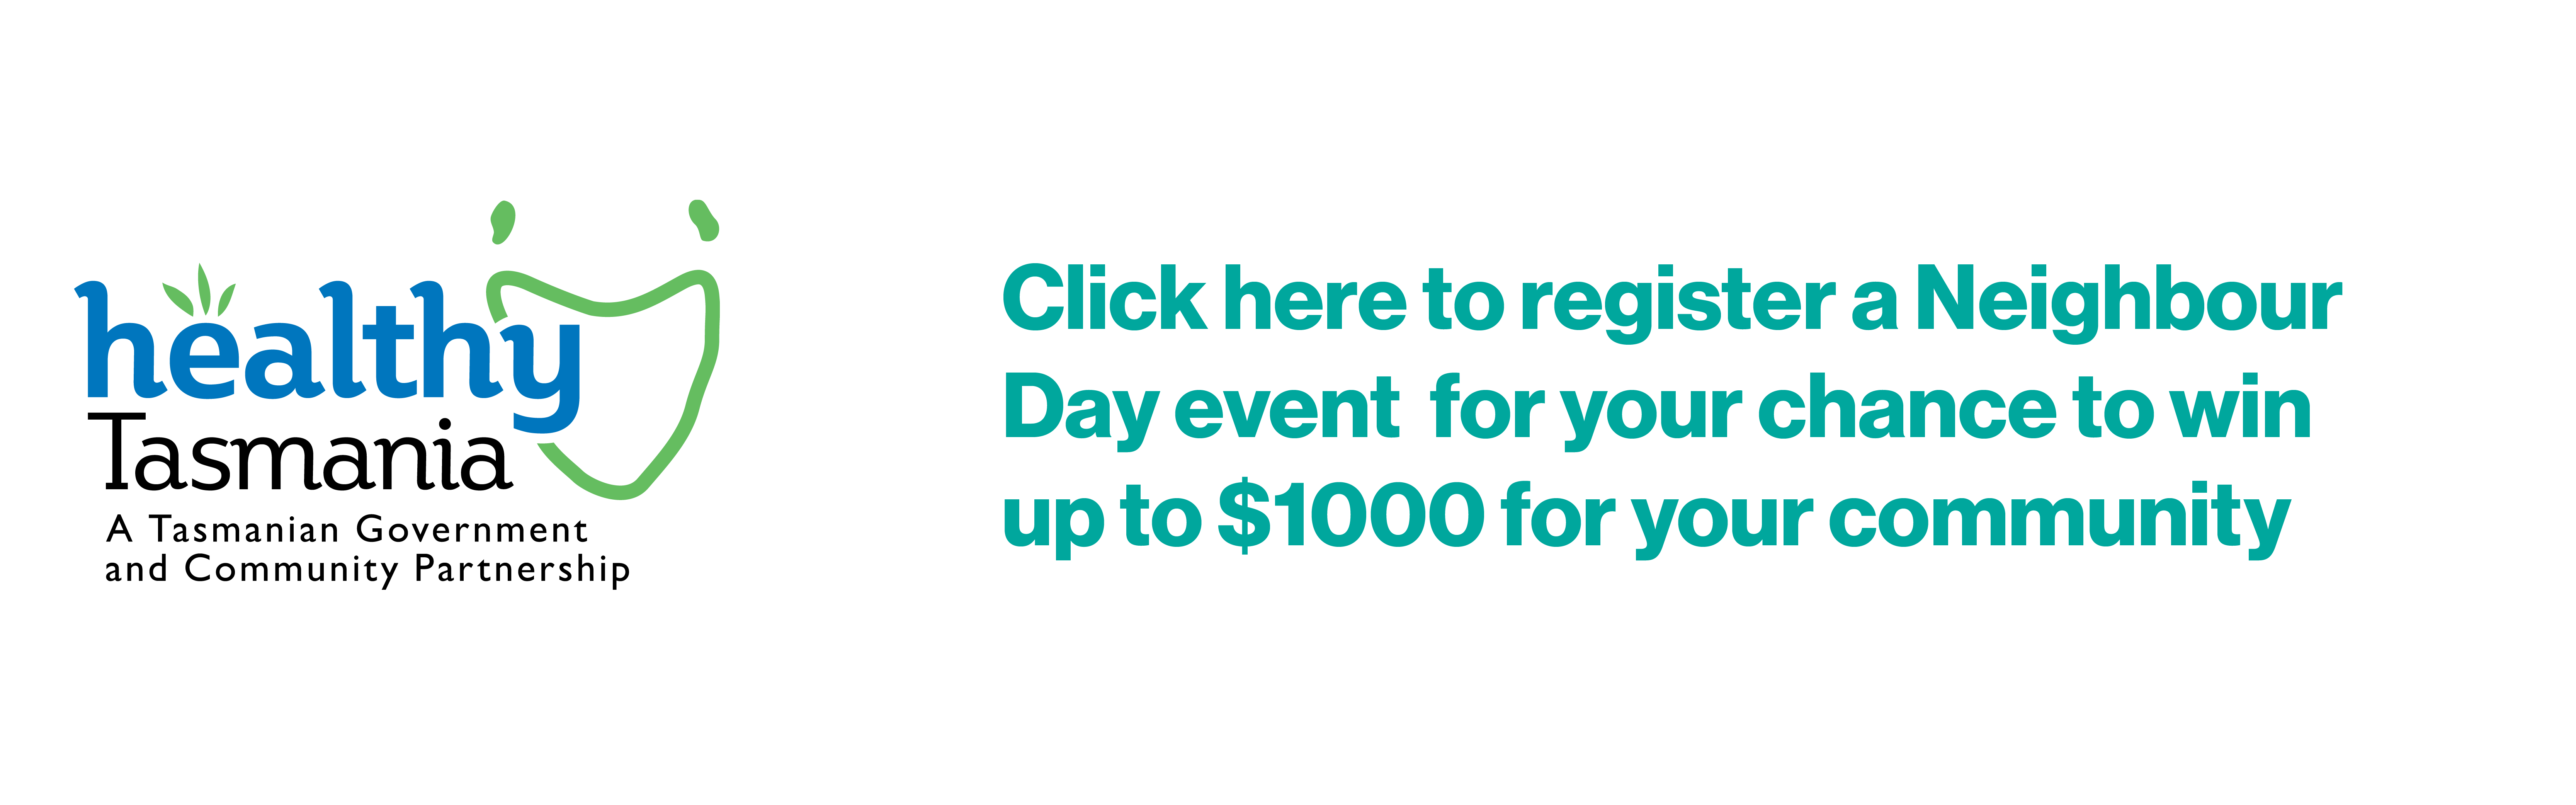 Register your event here